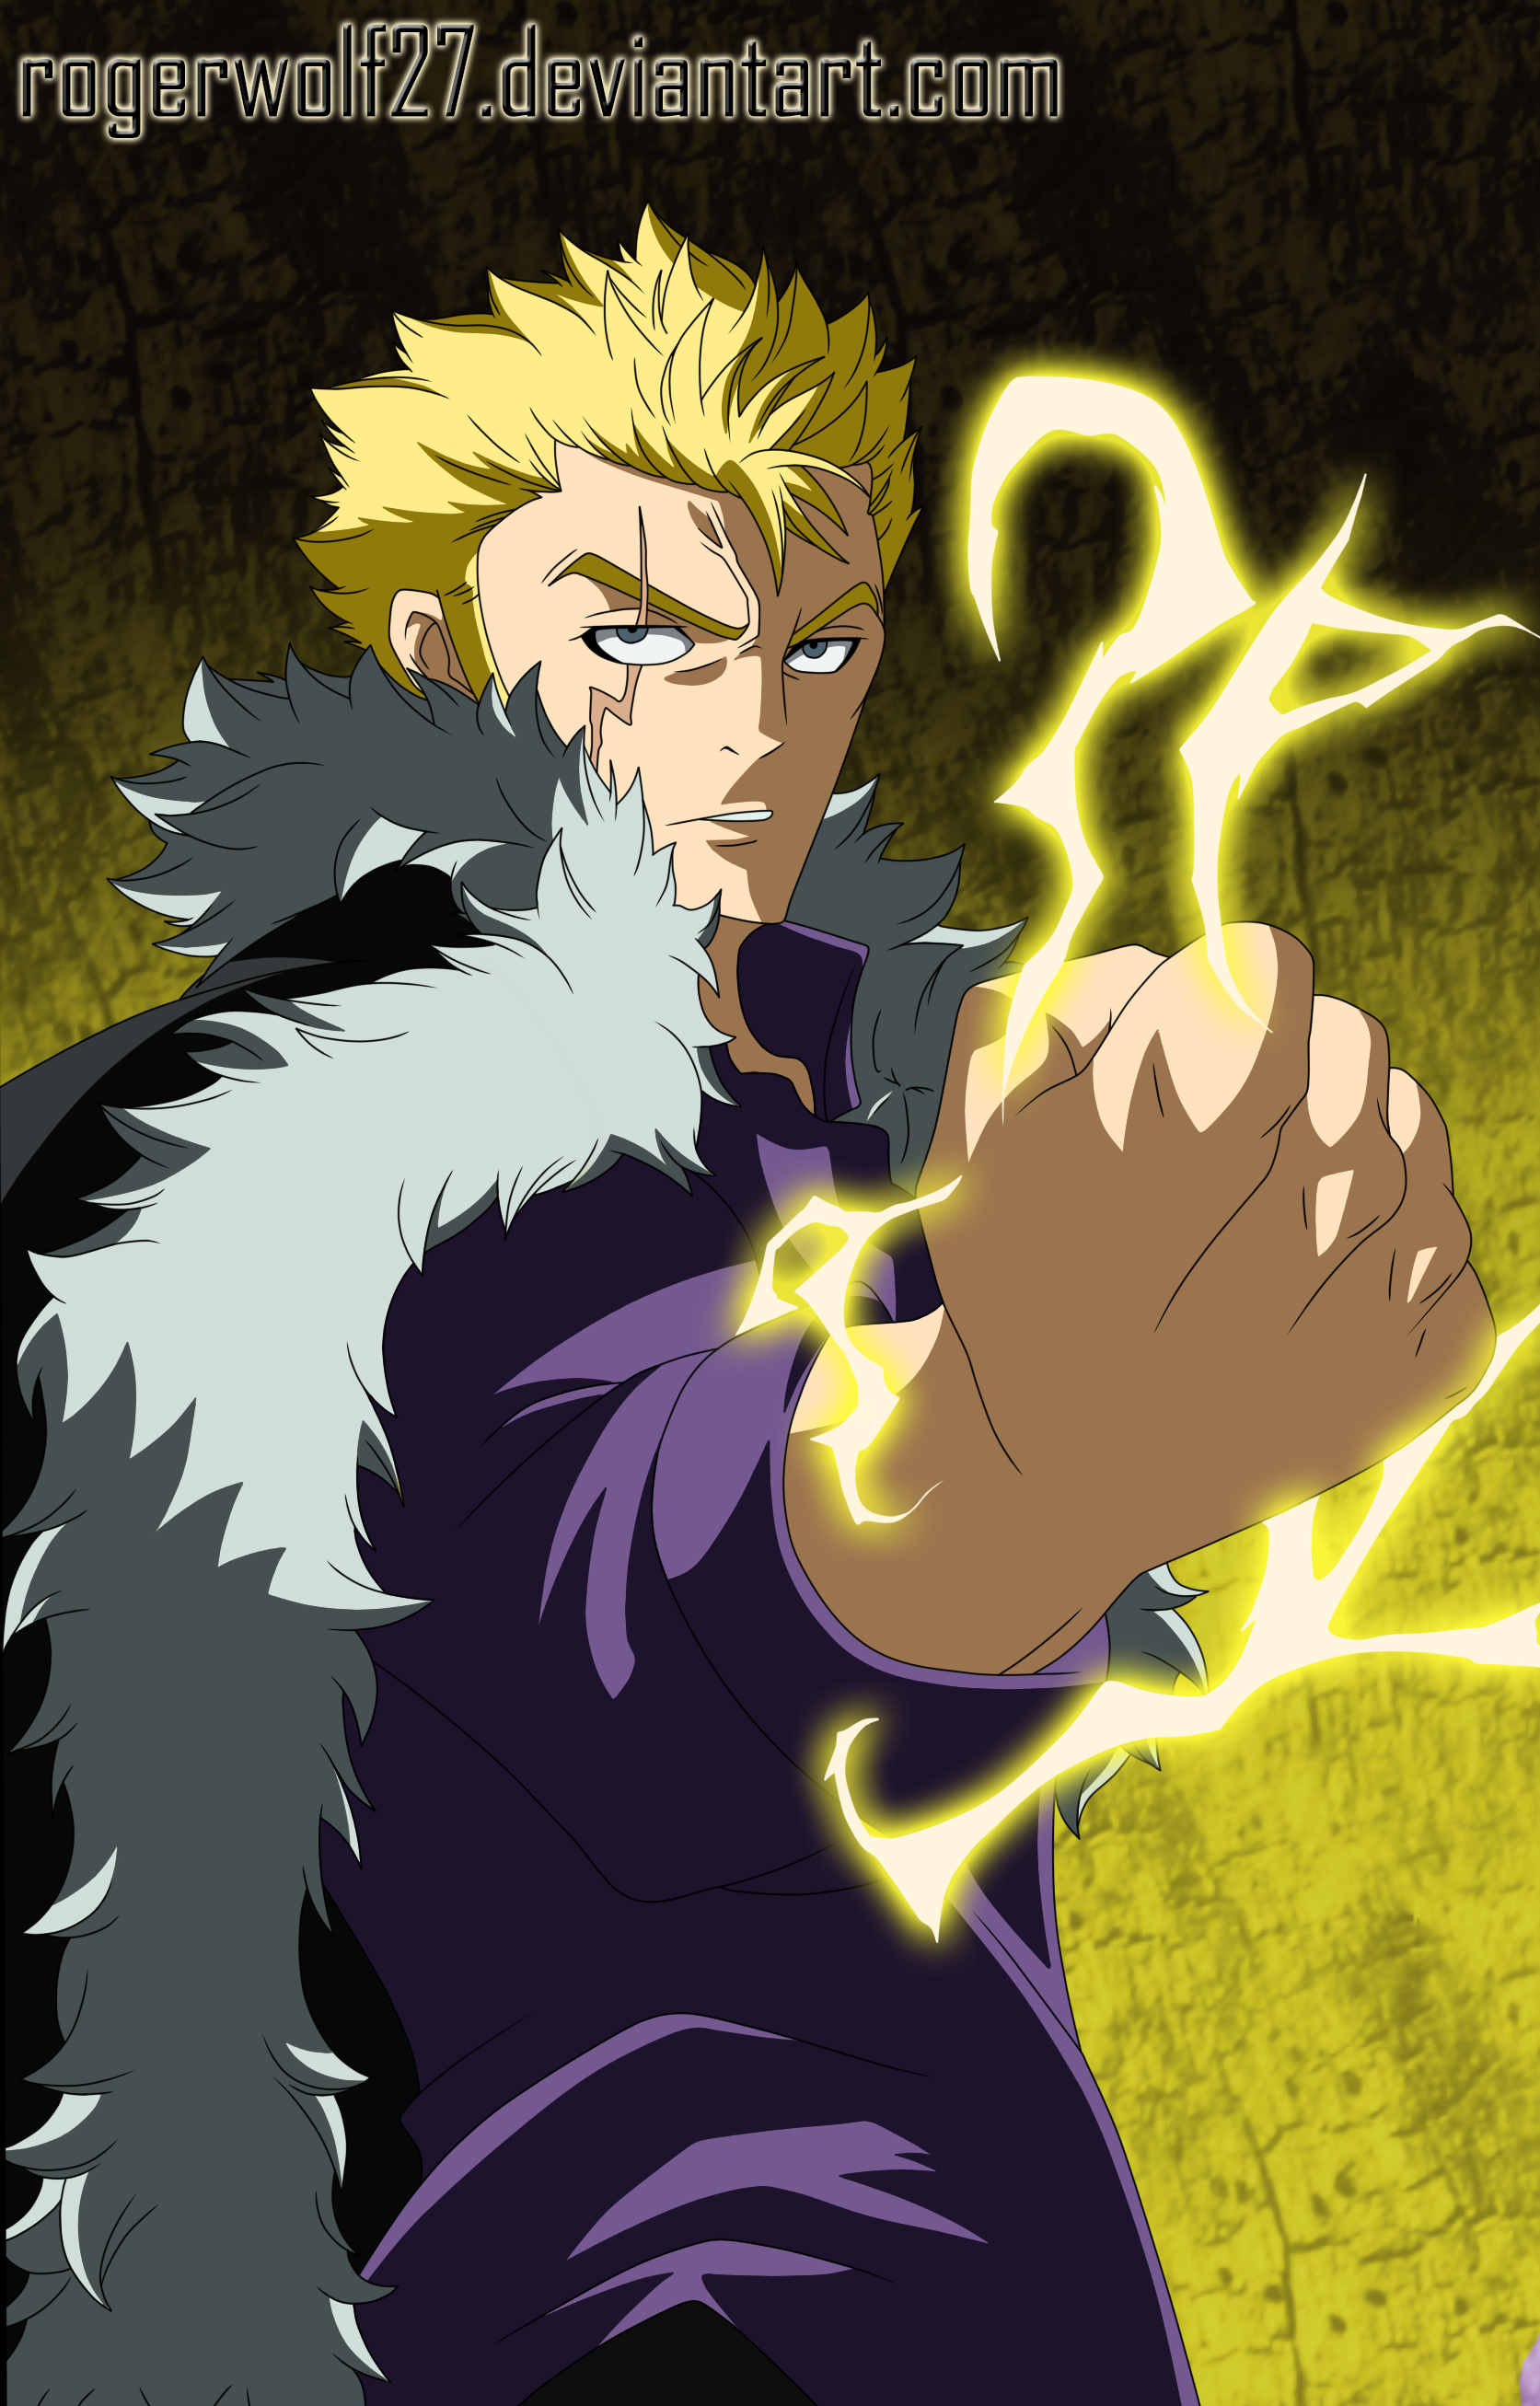 Meteoro Laxus_dreyar___fairy_tail_357_by_rogerwolf27-d6s7oh4